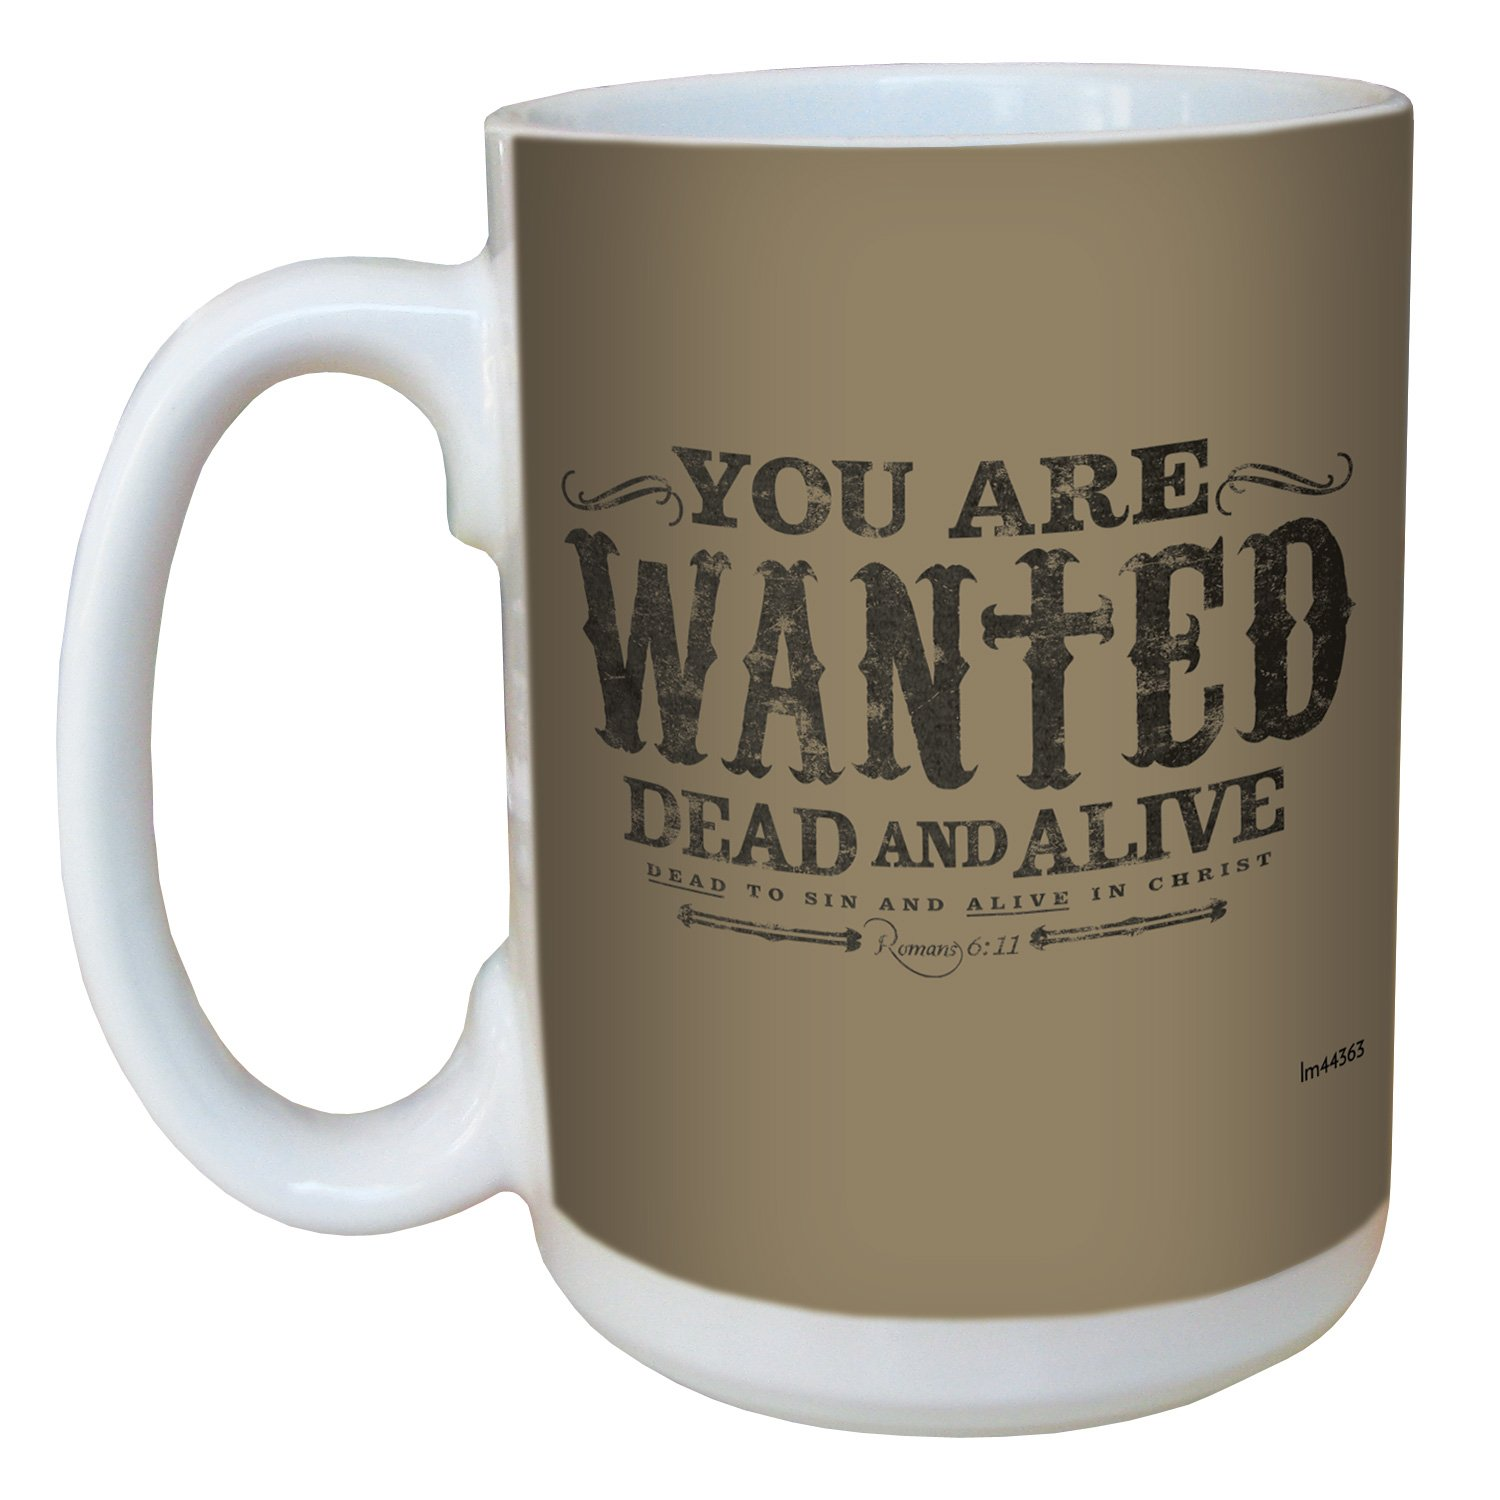 Tree-Free Greetings lm44363 Wanted Dead and Alive 15-Ounce Romans 6:11 Ceramic Mug with Full-Sized Handle